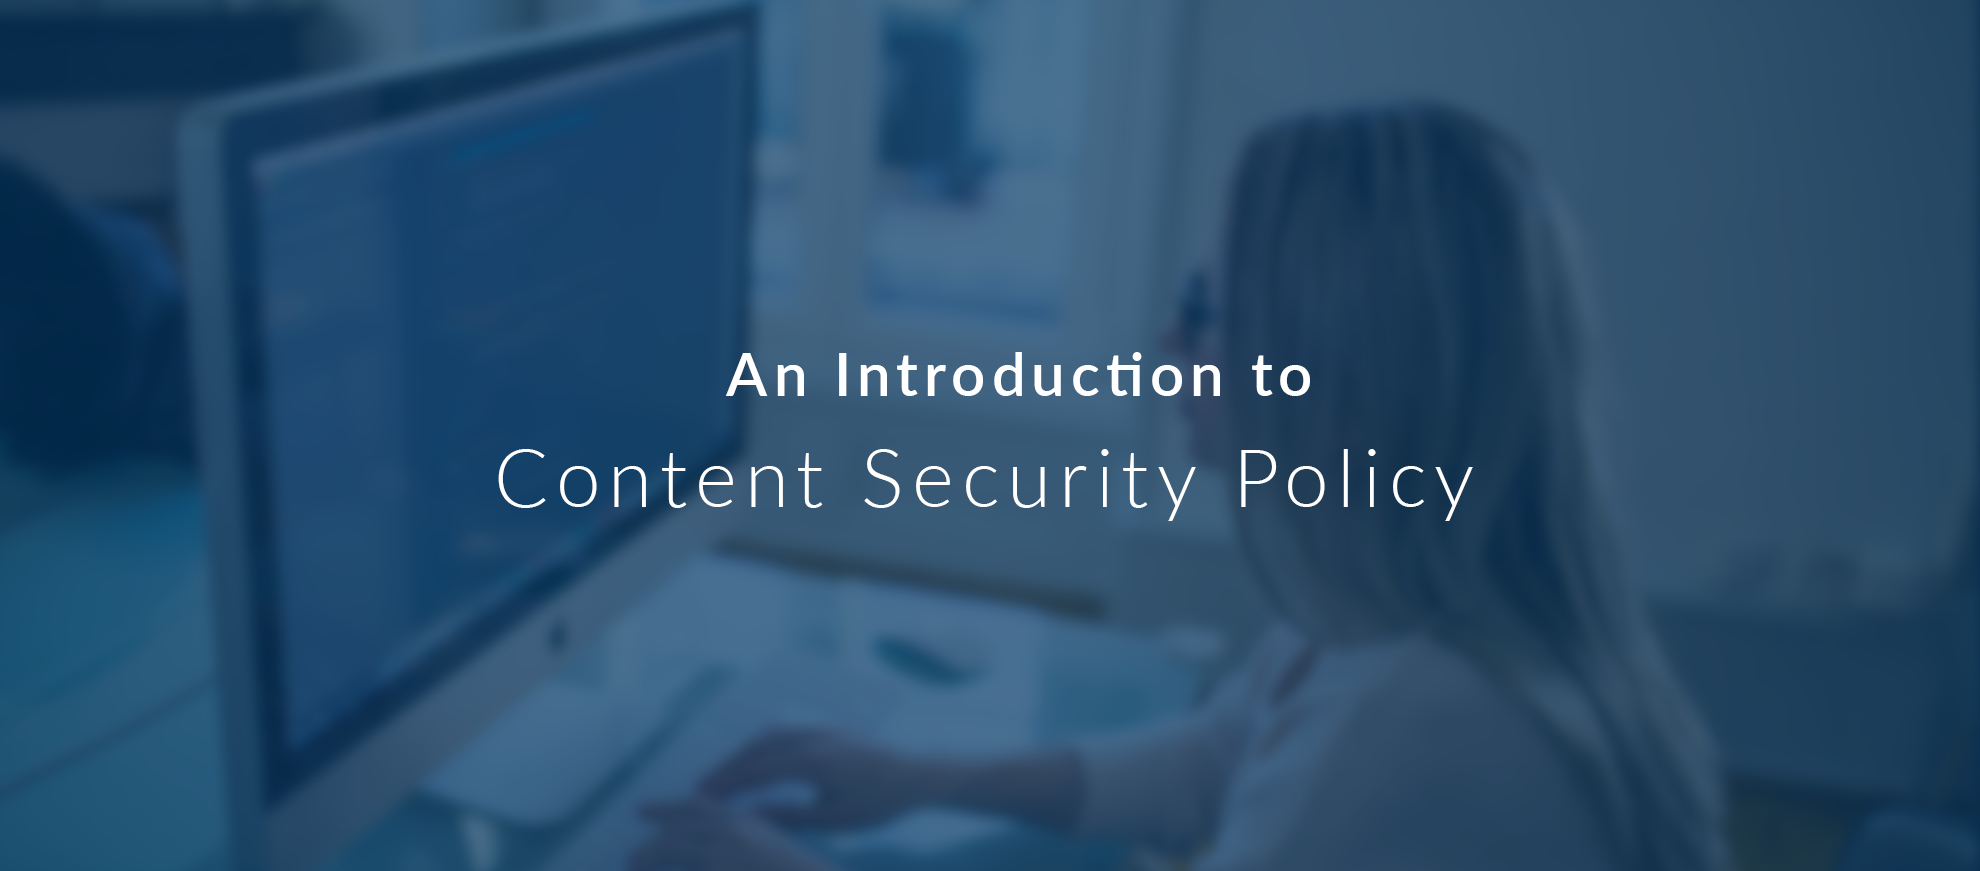 An Introduction to Content Security Policy (CSP)